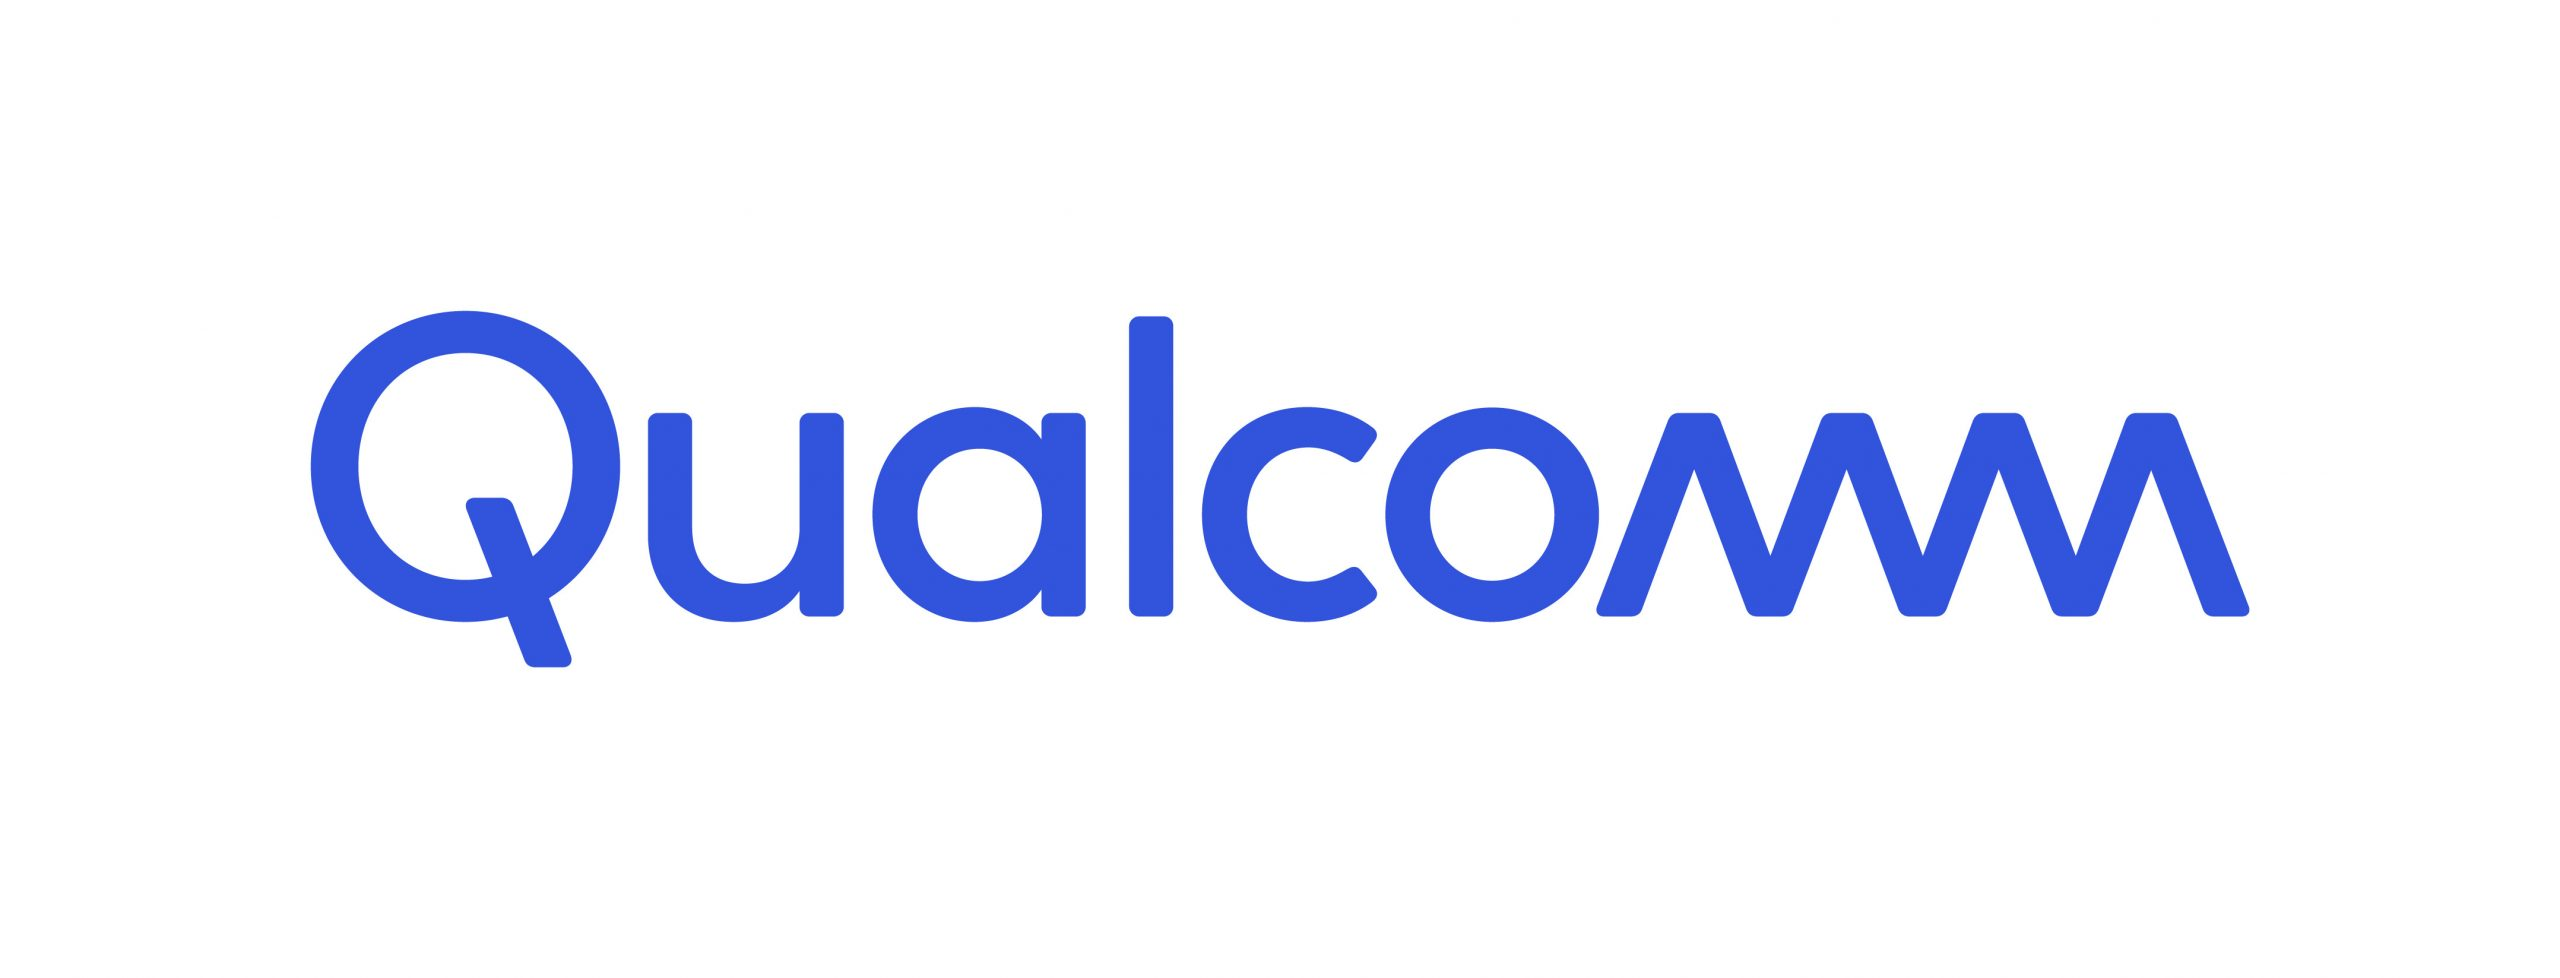 логотип Qualcomm